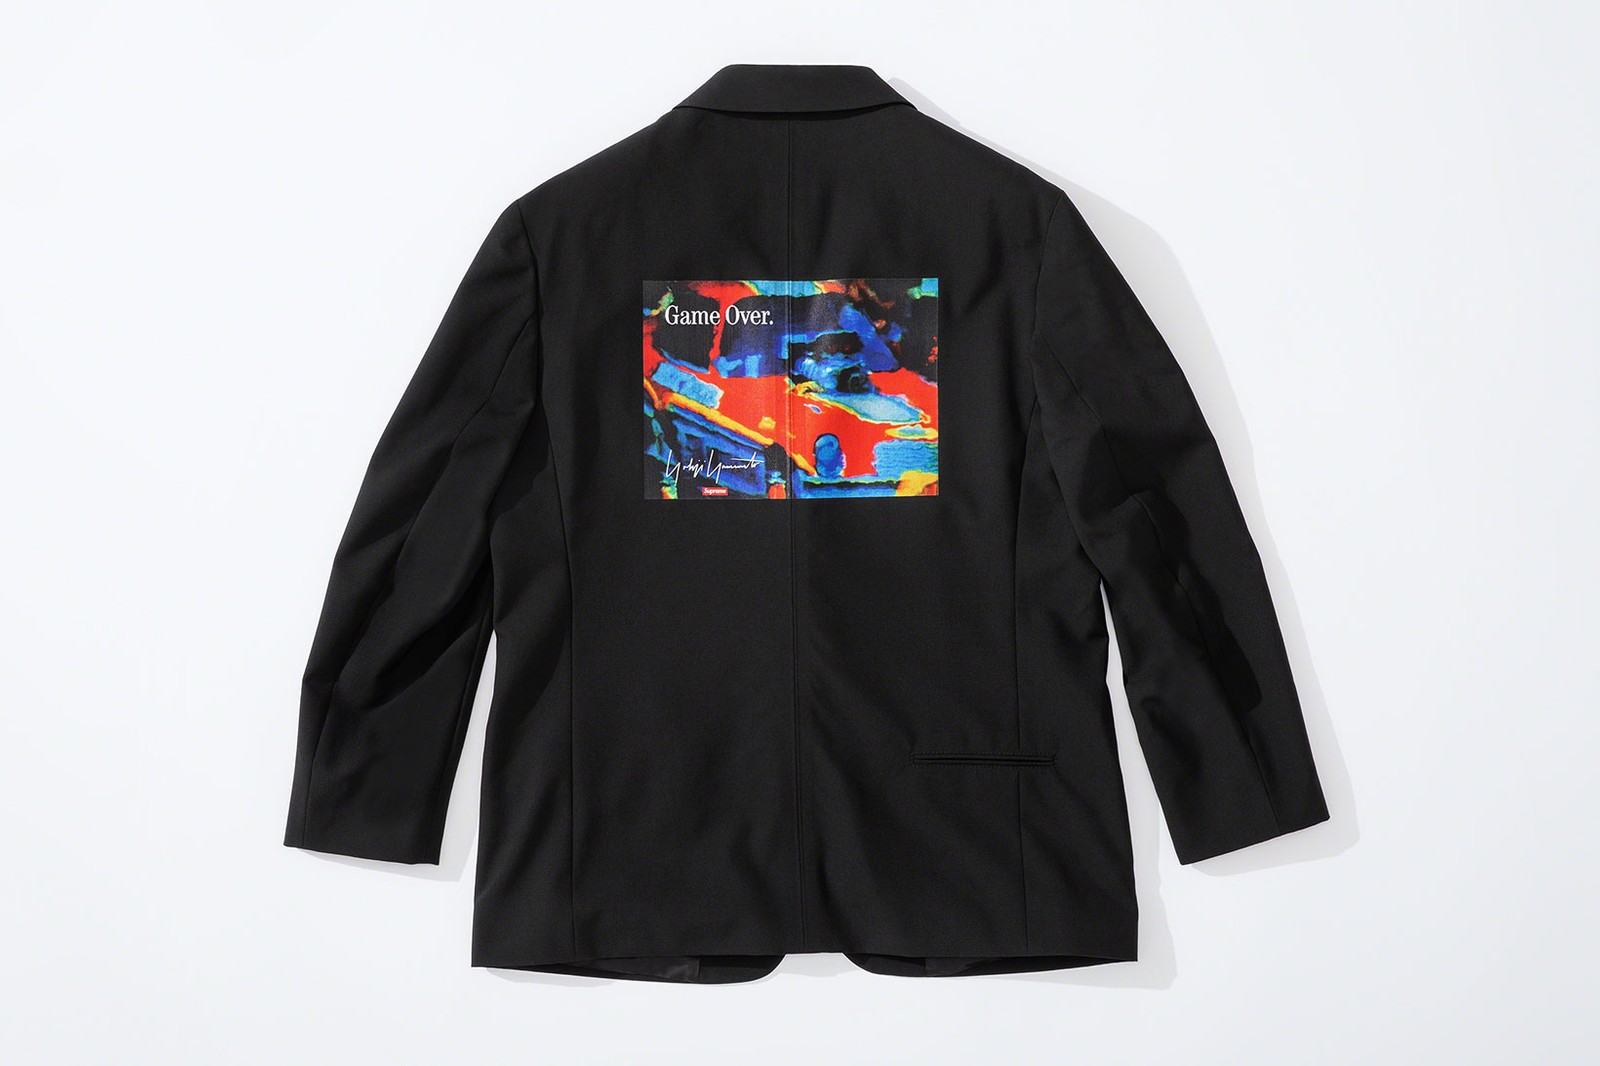 supreme yohji yamamoto collaboration lookbook puffers suits jackets knit sweaters hoodies release info